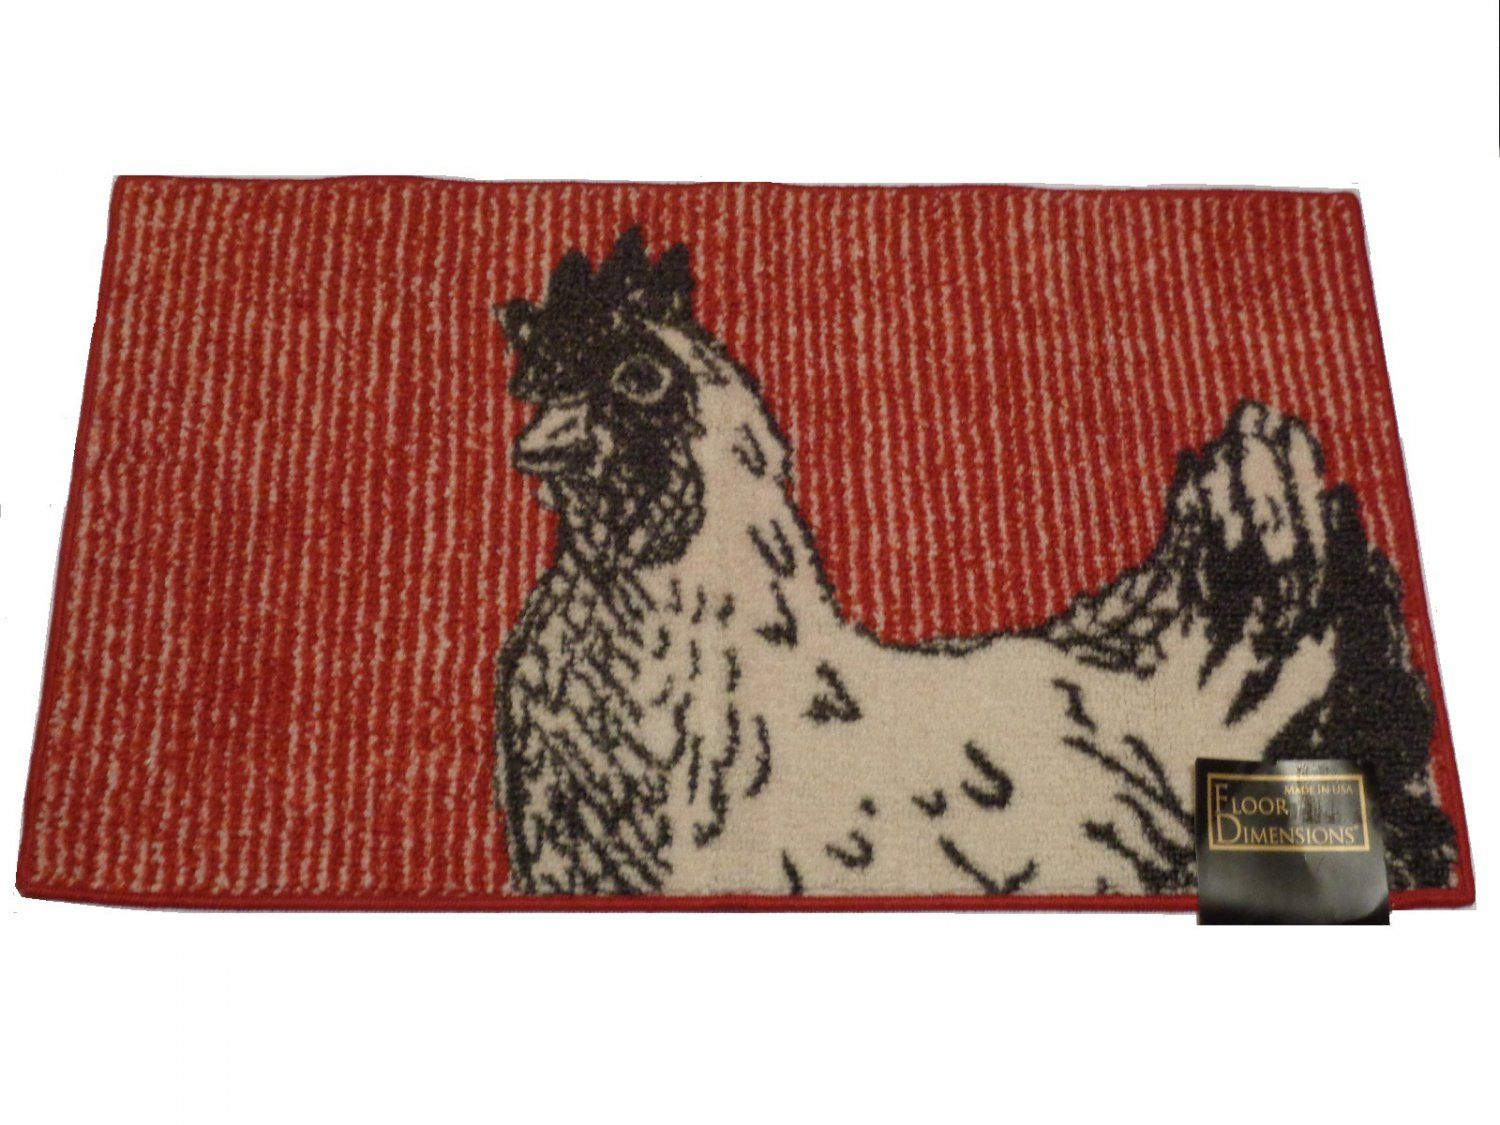 rooster kitchen rug design plans black white red country decor decorate your themed with this done in and featuring a